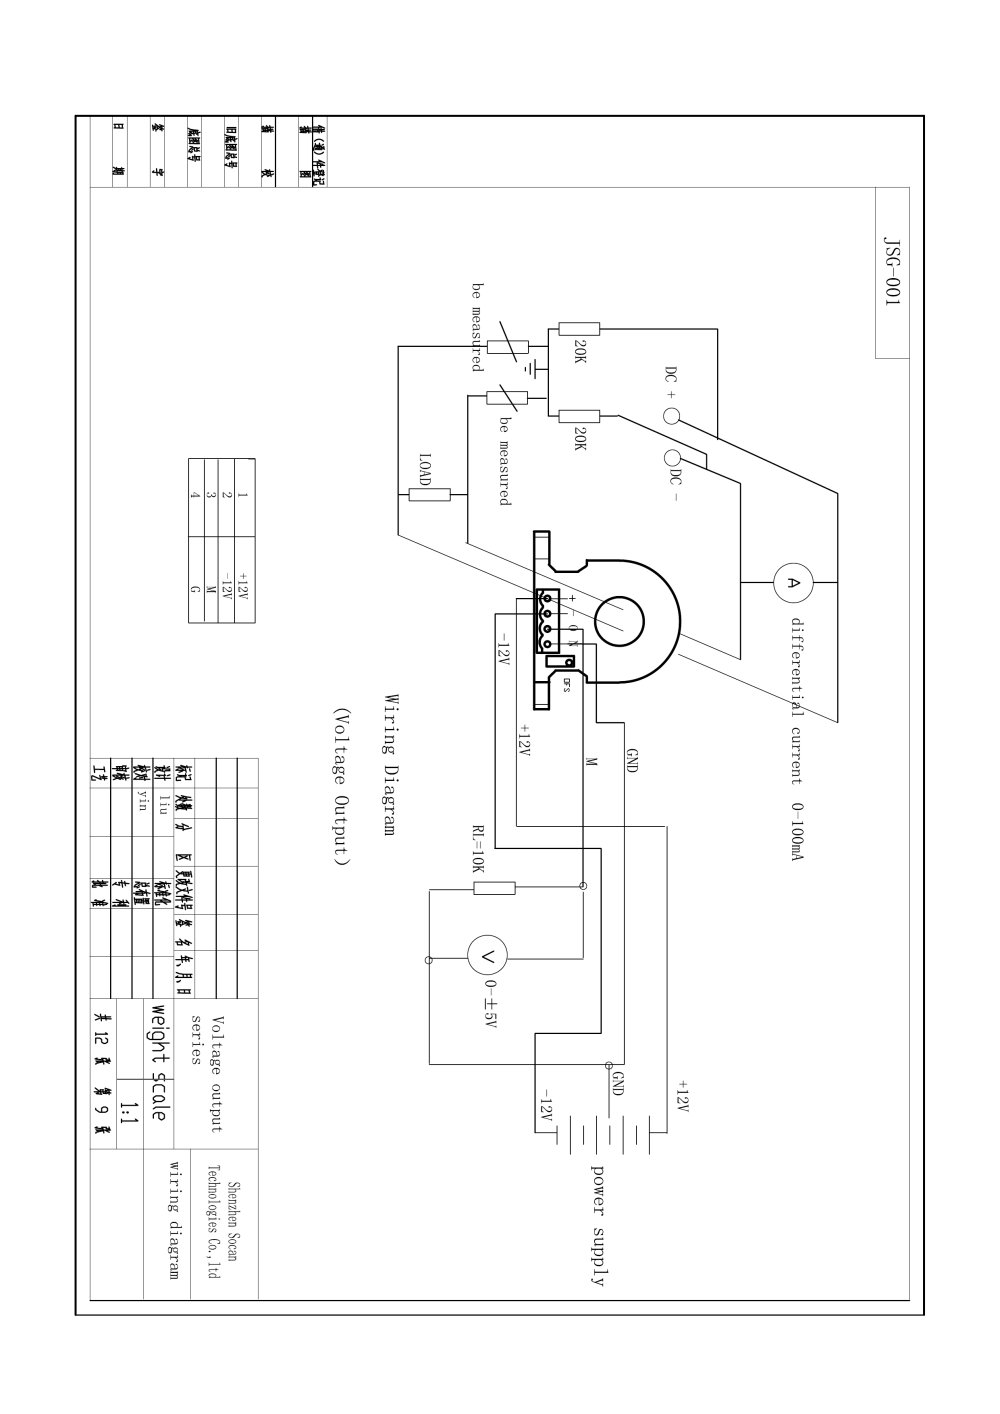 DC Leakage current sensor SCD Series Wiring Diagram Shenzhen